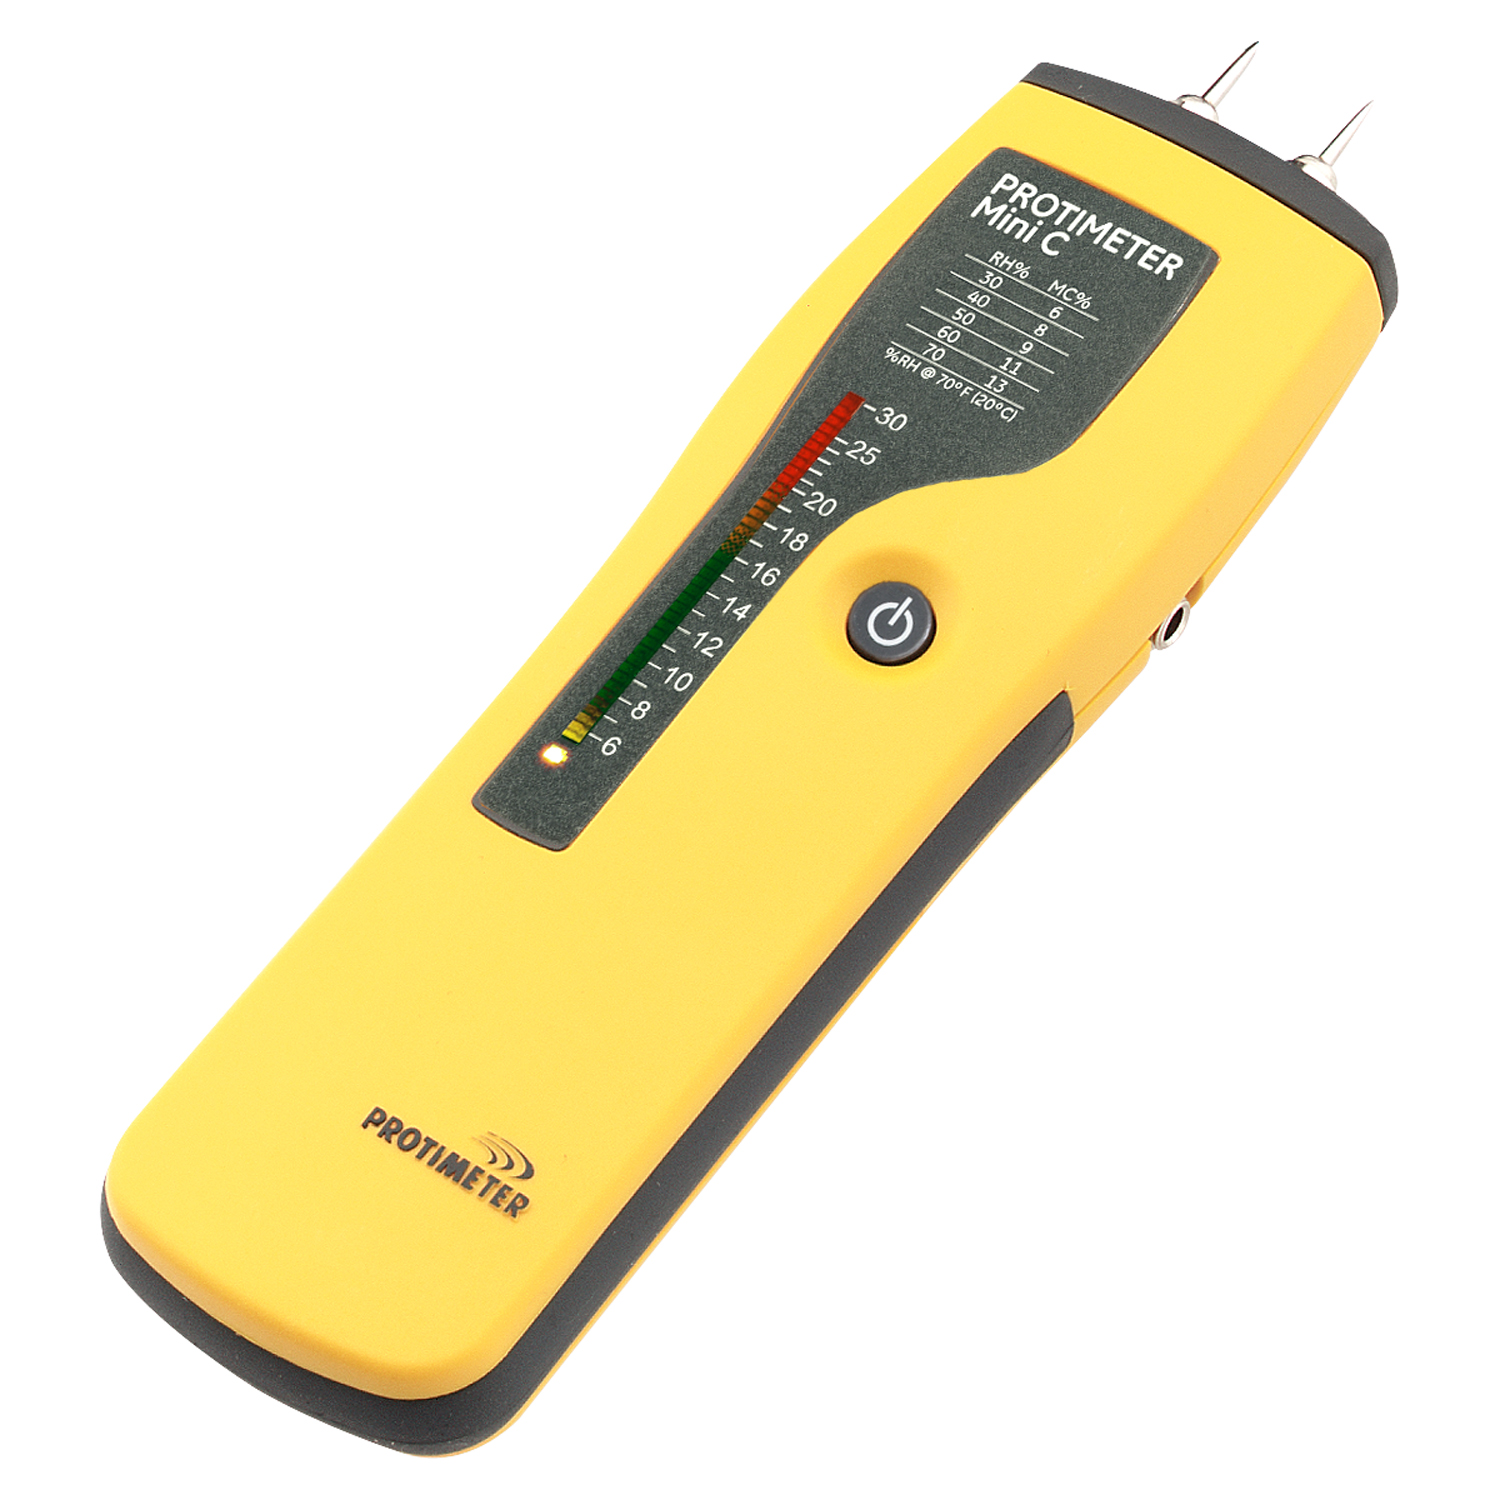 Protimeter mini c wood moisture meter forestry suppliers for Wood floor moisture meter